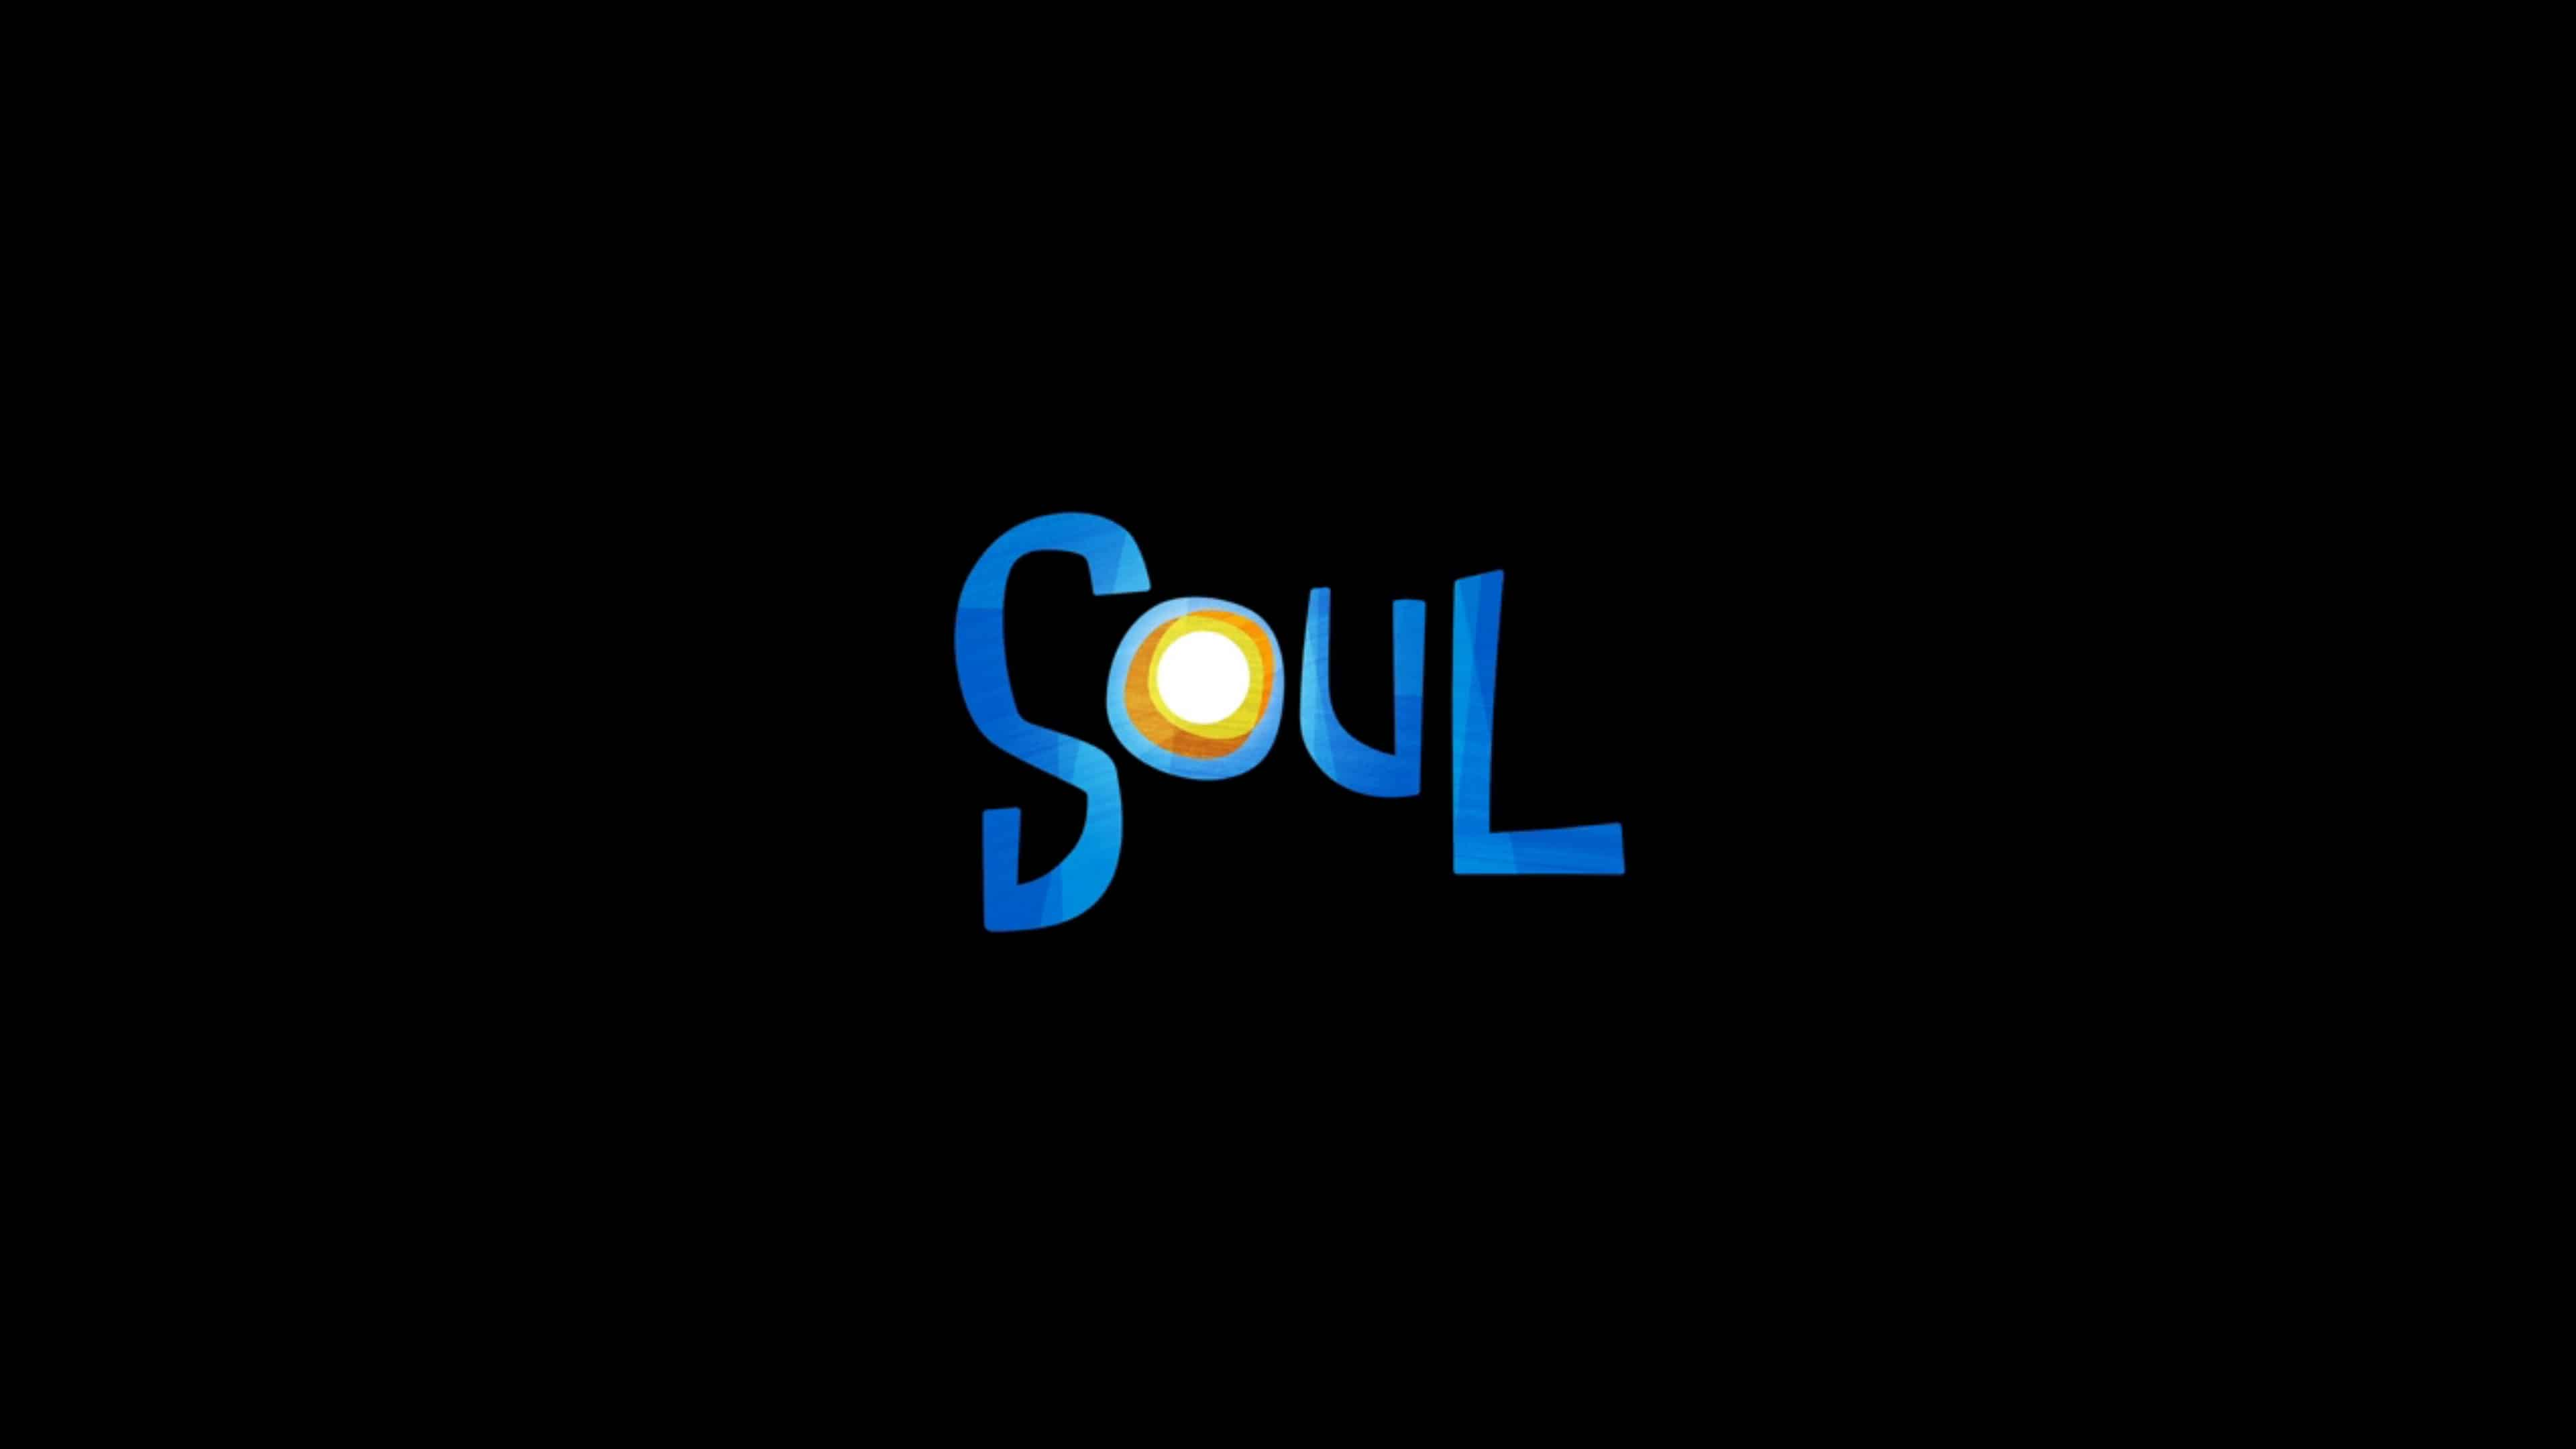 Soul - Review/Summary (with Spoilers)